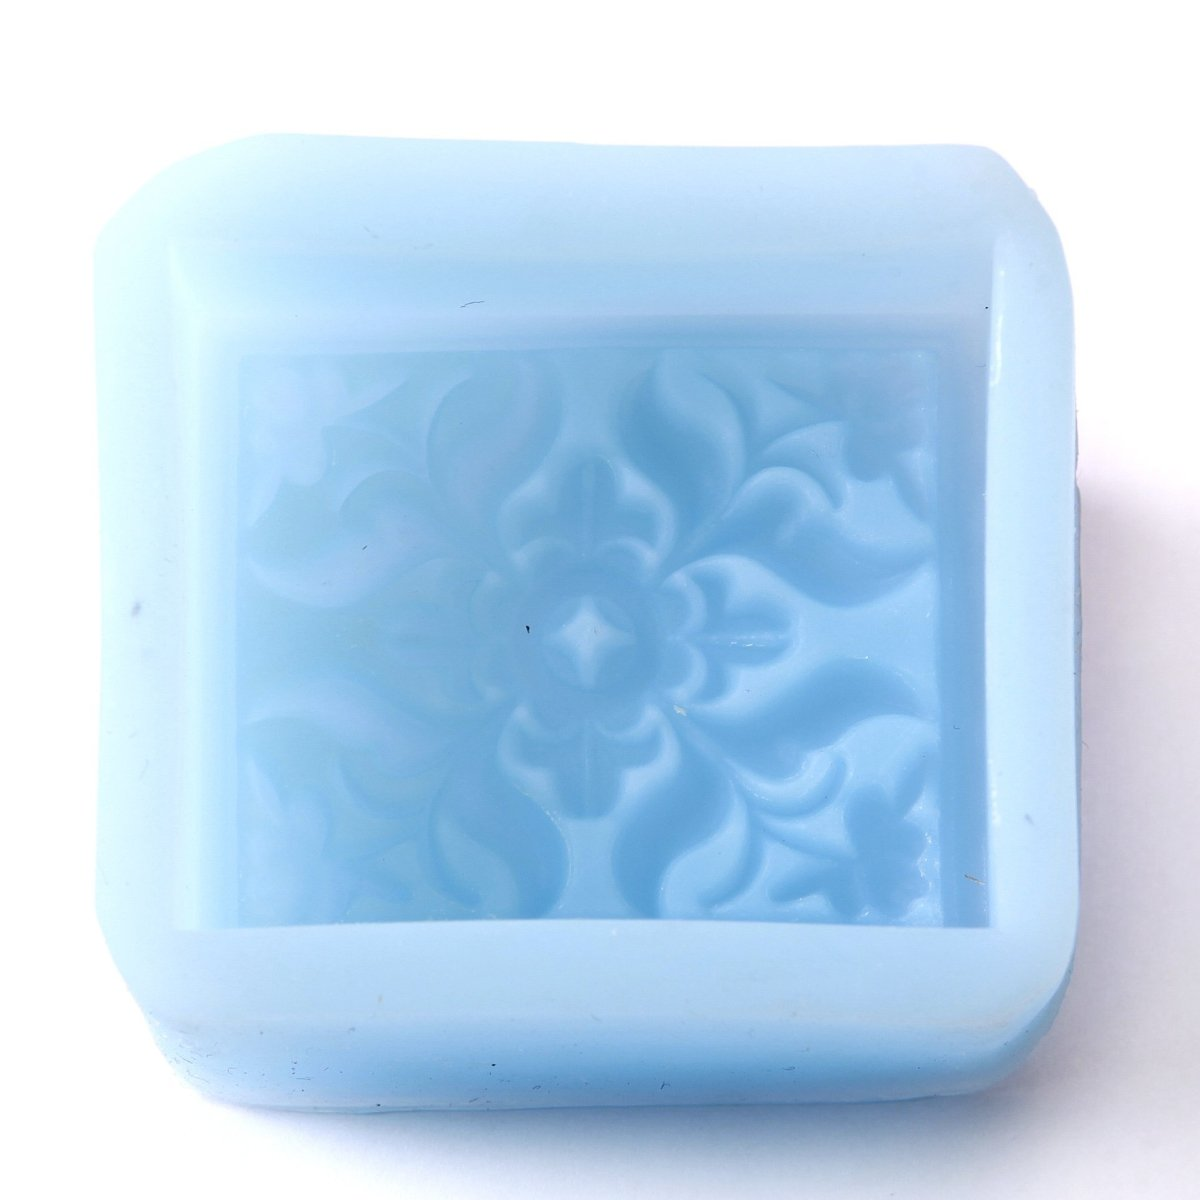 Classic Square Silicone Soap Mould R0360 - Mystic Moments UK